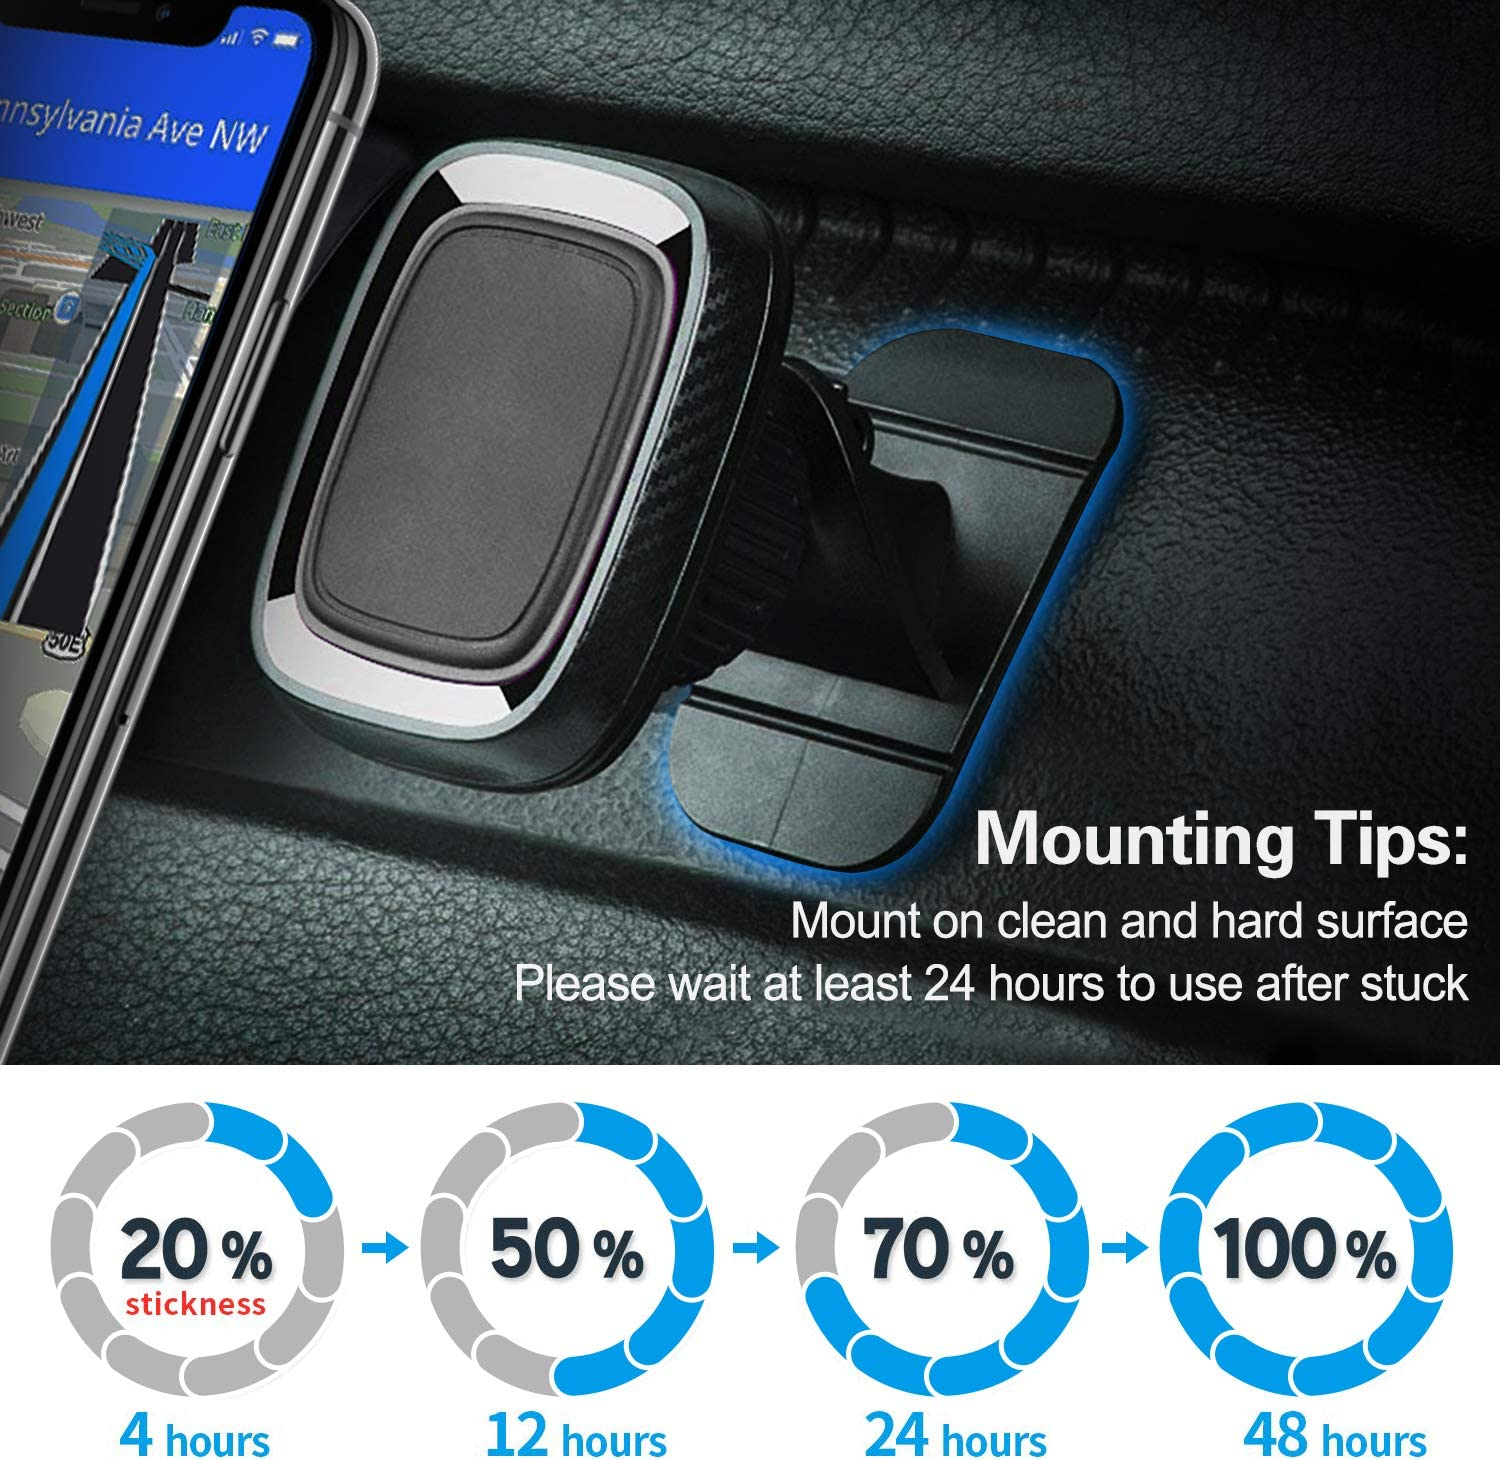 Sticky Adhesive Pad Replacement for Car Dashboard Magnetic Phone Mount Base pop-tech 8pcs 3M VHB Double Sided Sticker Heat Resistance Tapes Compatible with Suction Cup Cellphone Holder /& Dash Cam